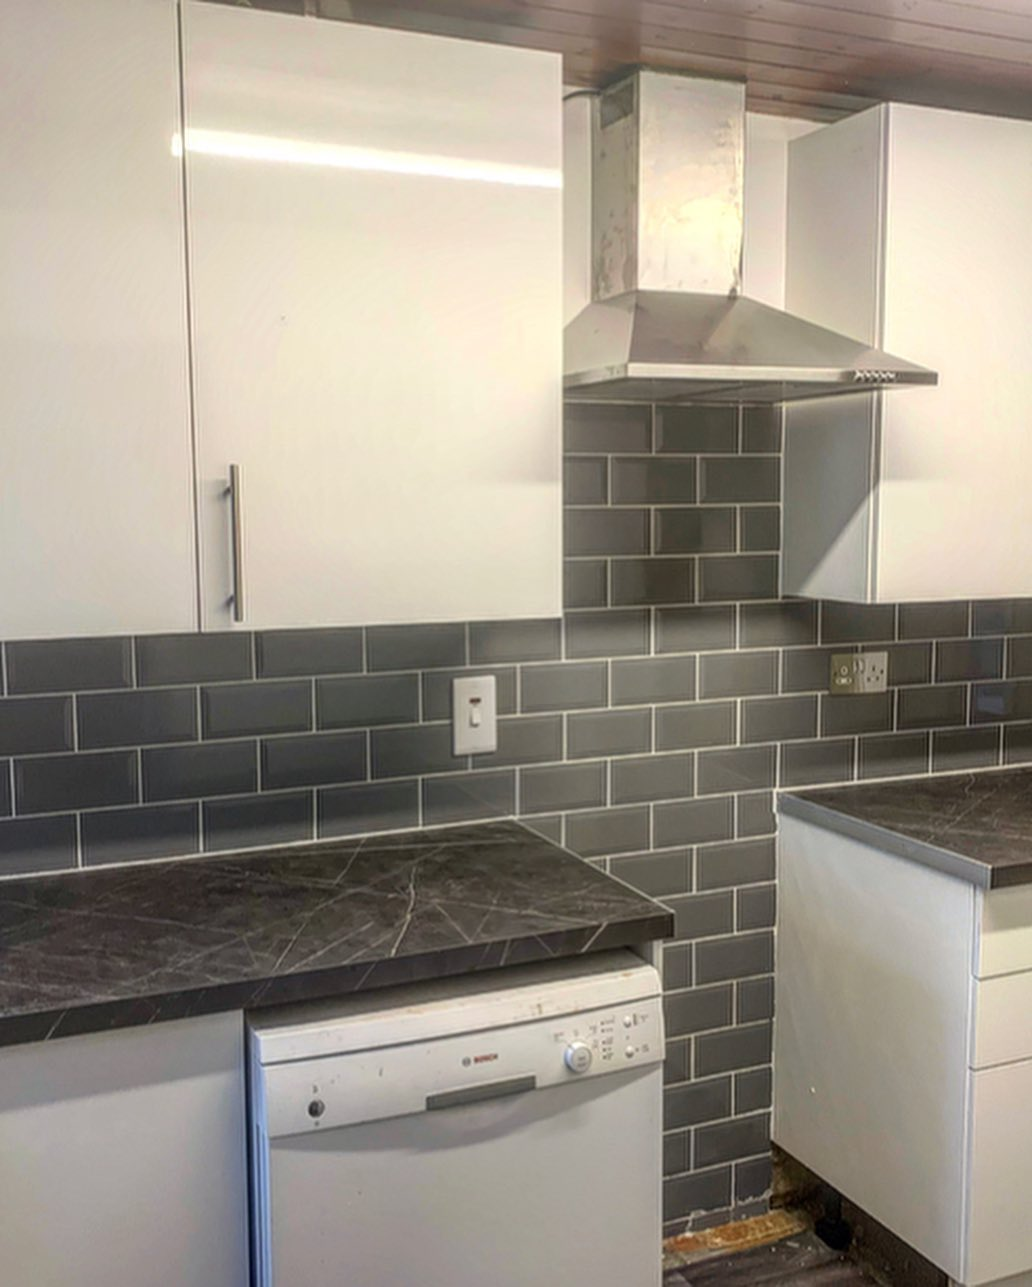 Budget Kitchen Installations in South London